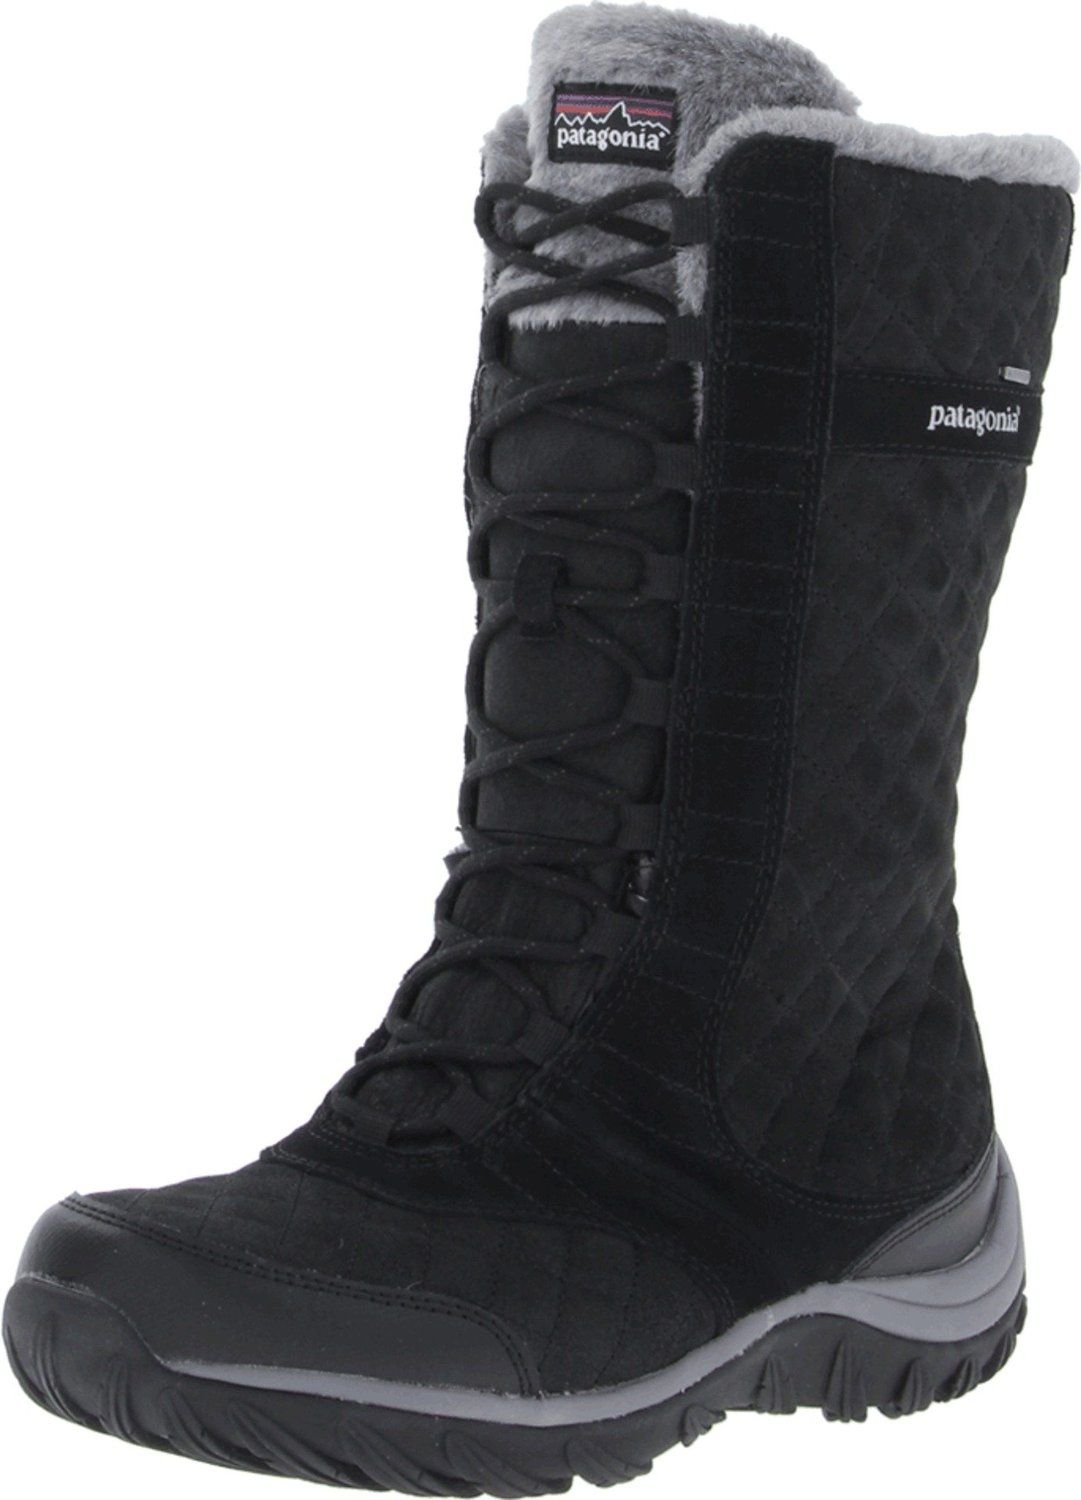 Best Waterproof Snow Boots for Women 2015 - Womens Fashion b77354c4fd